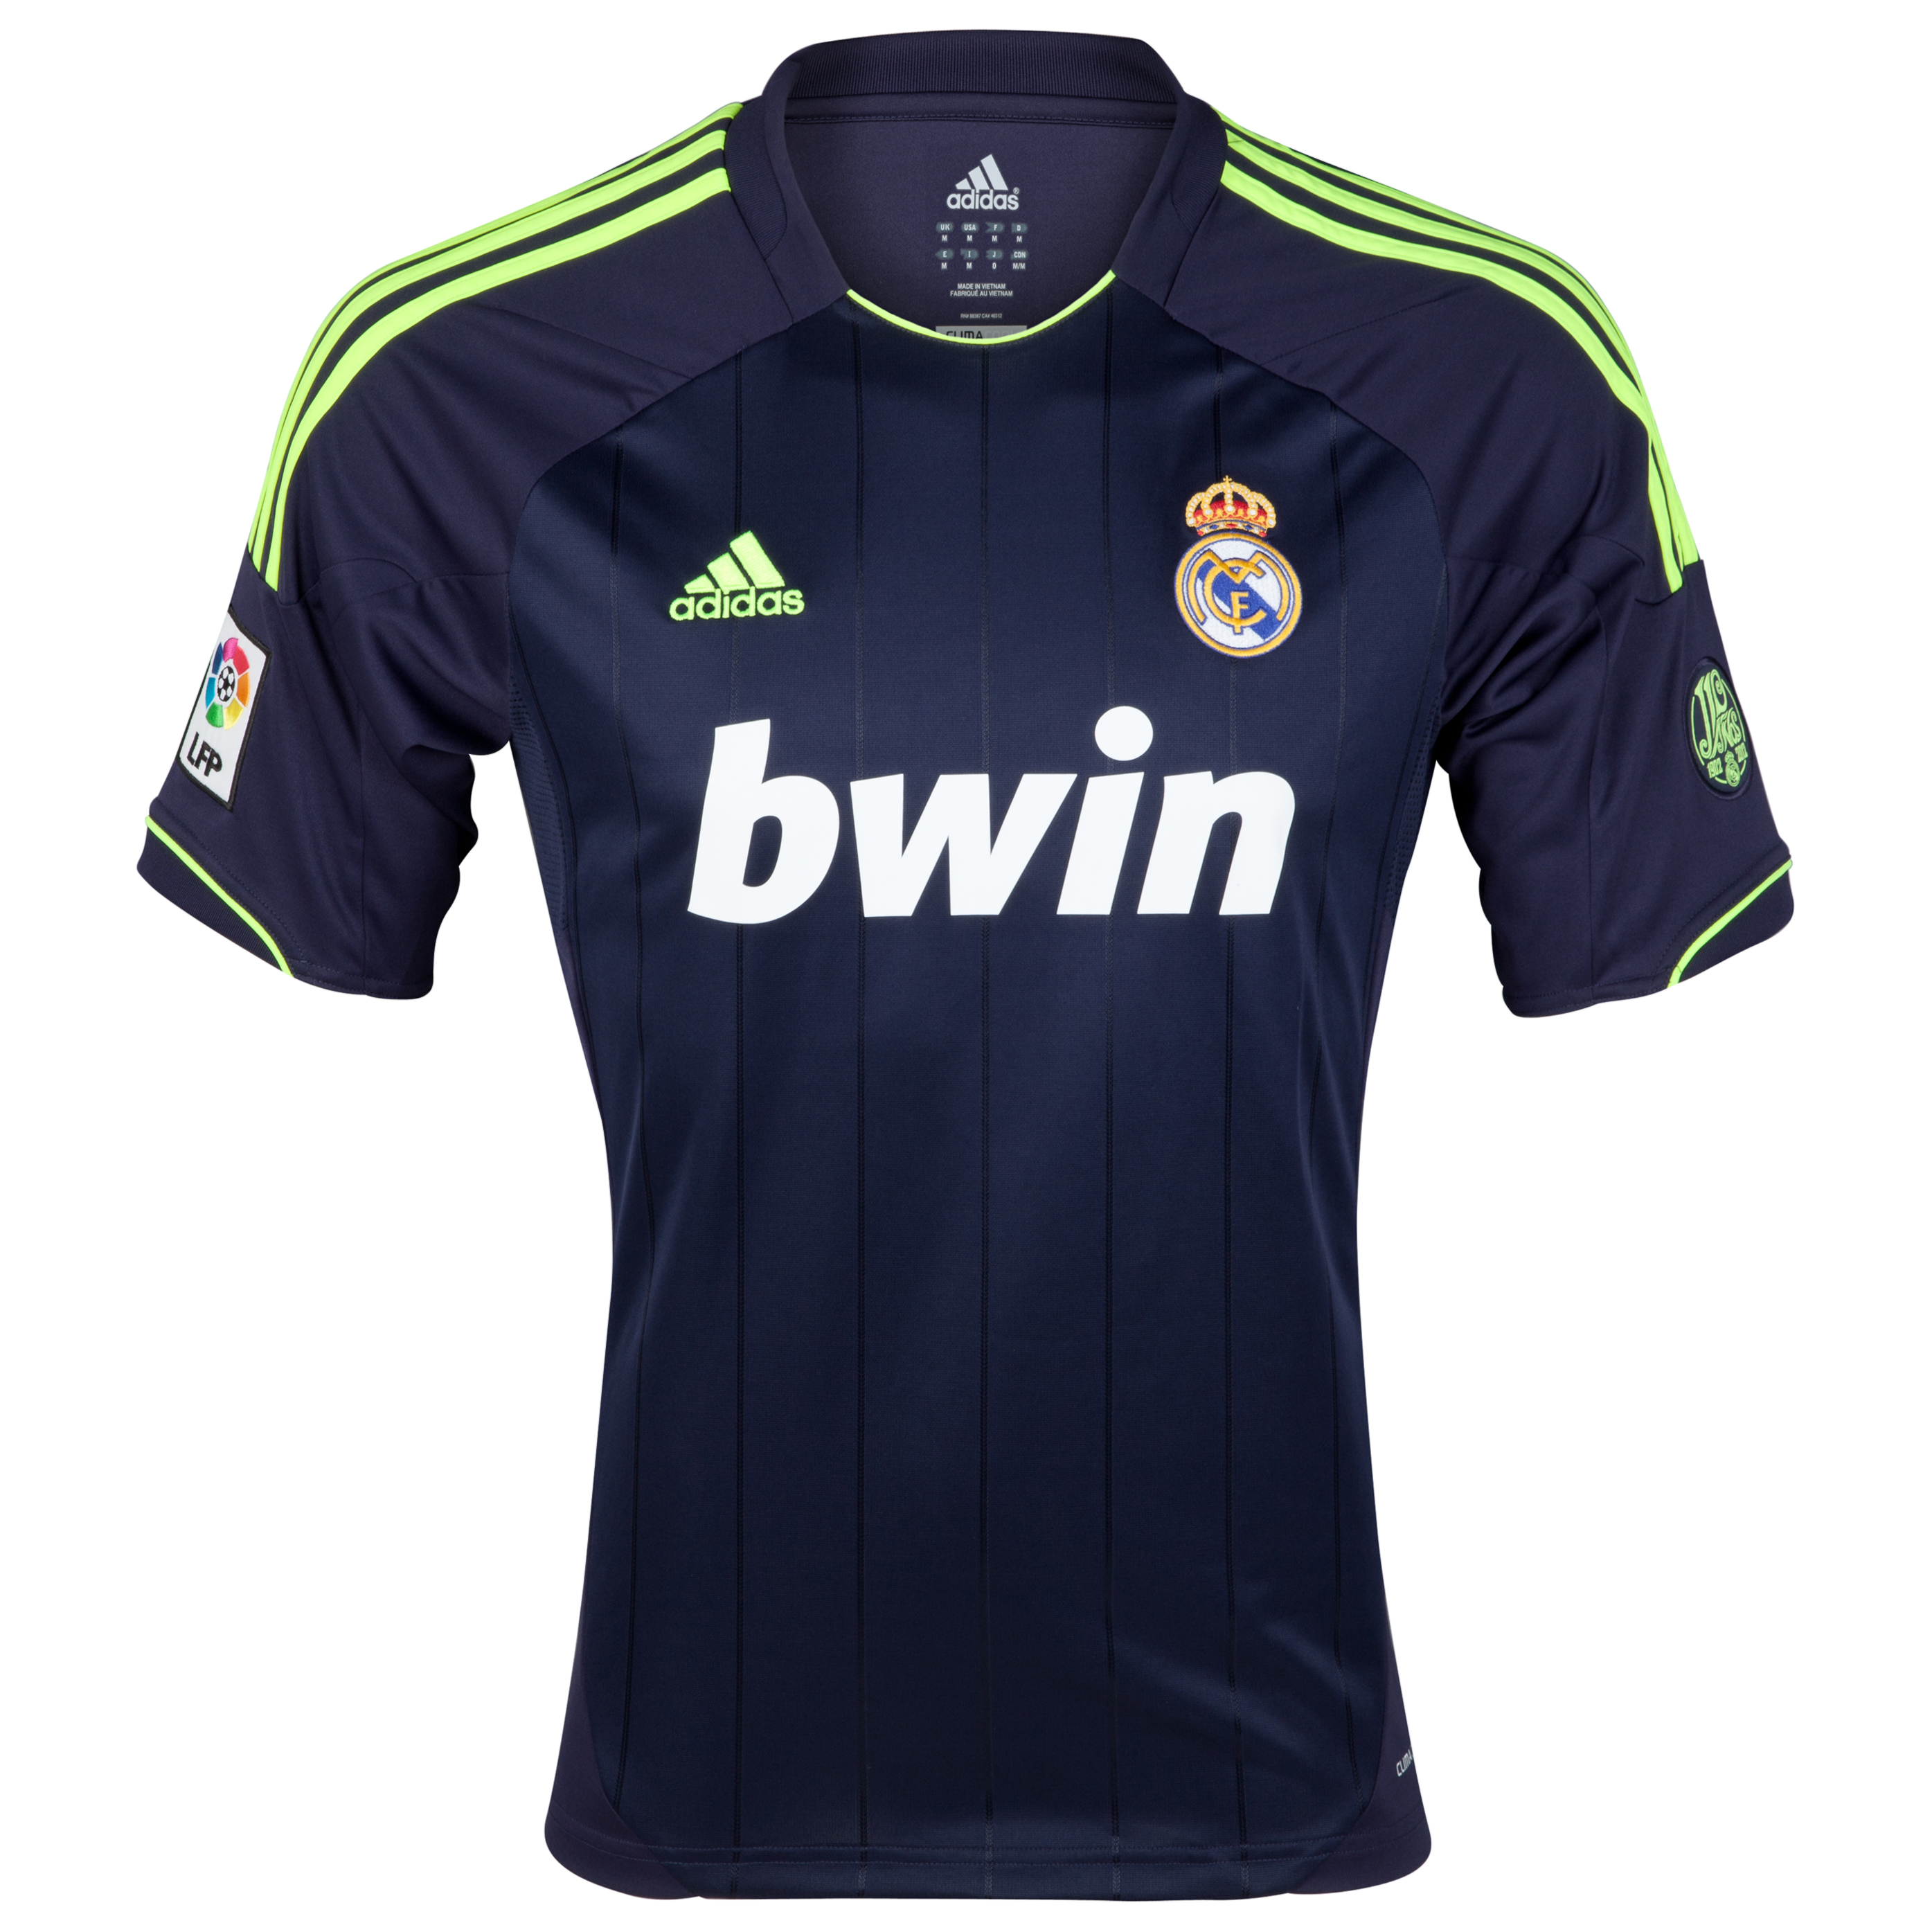 Camiseta visitante Real Madrid 2012/13